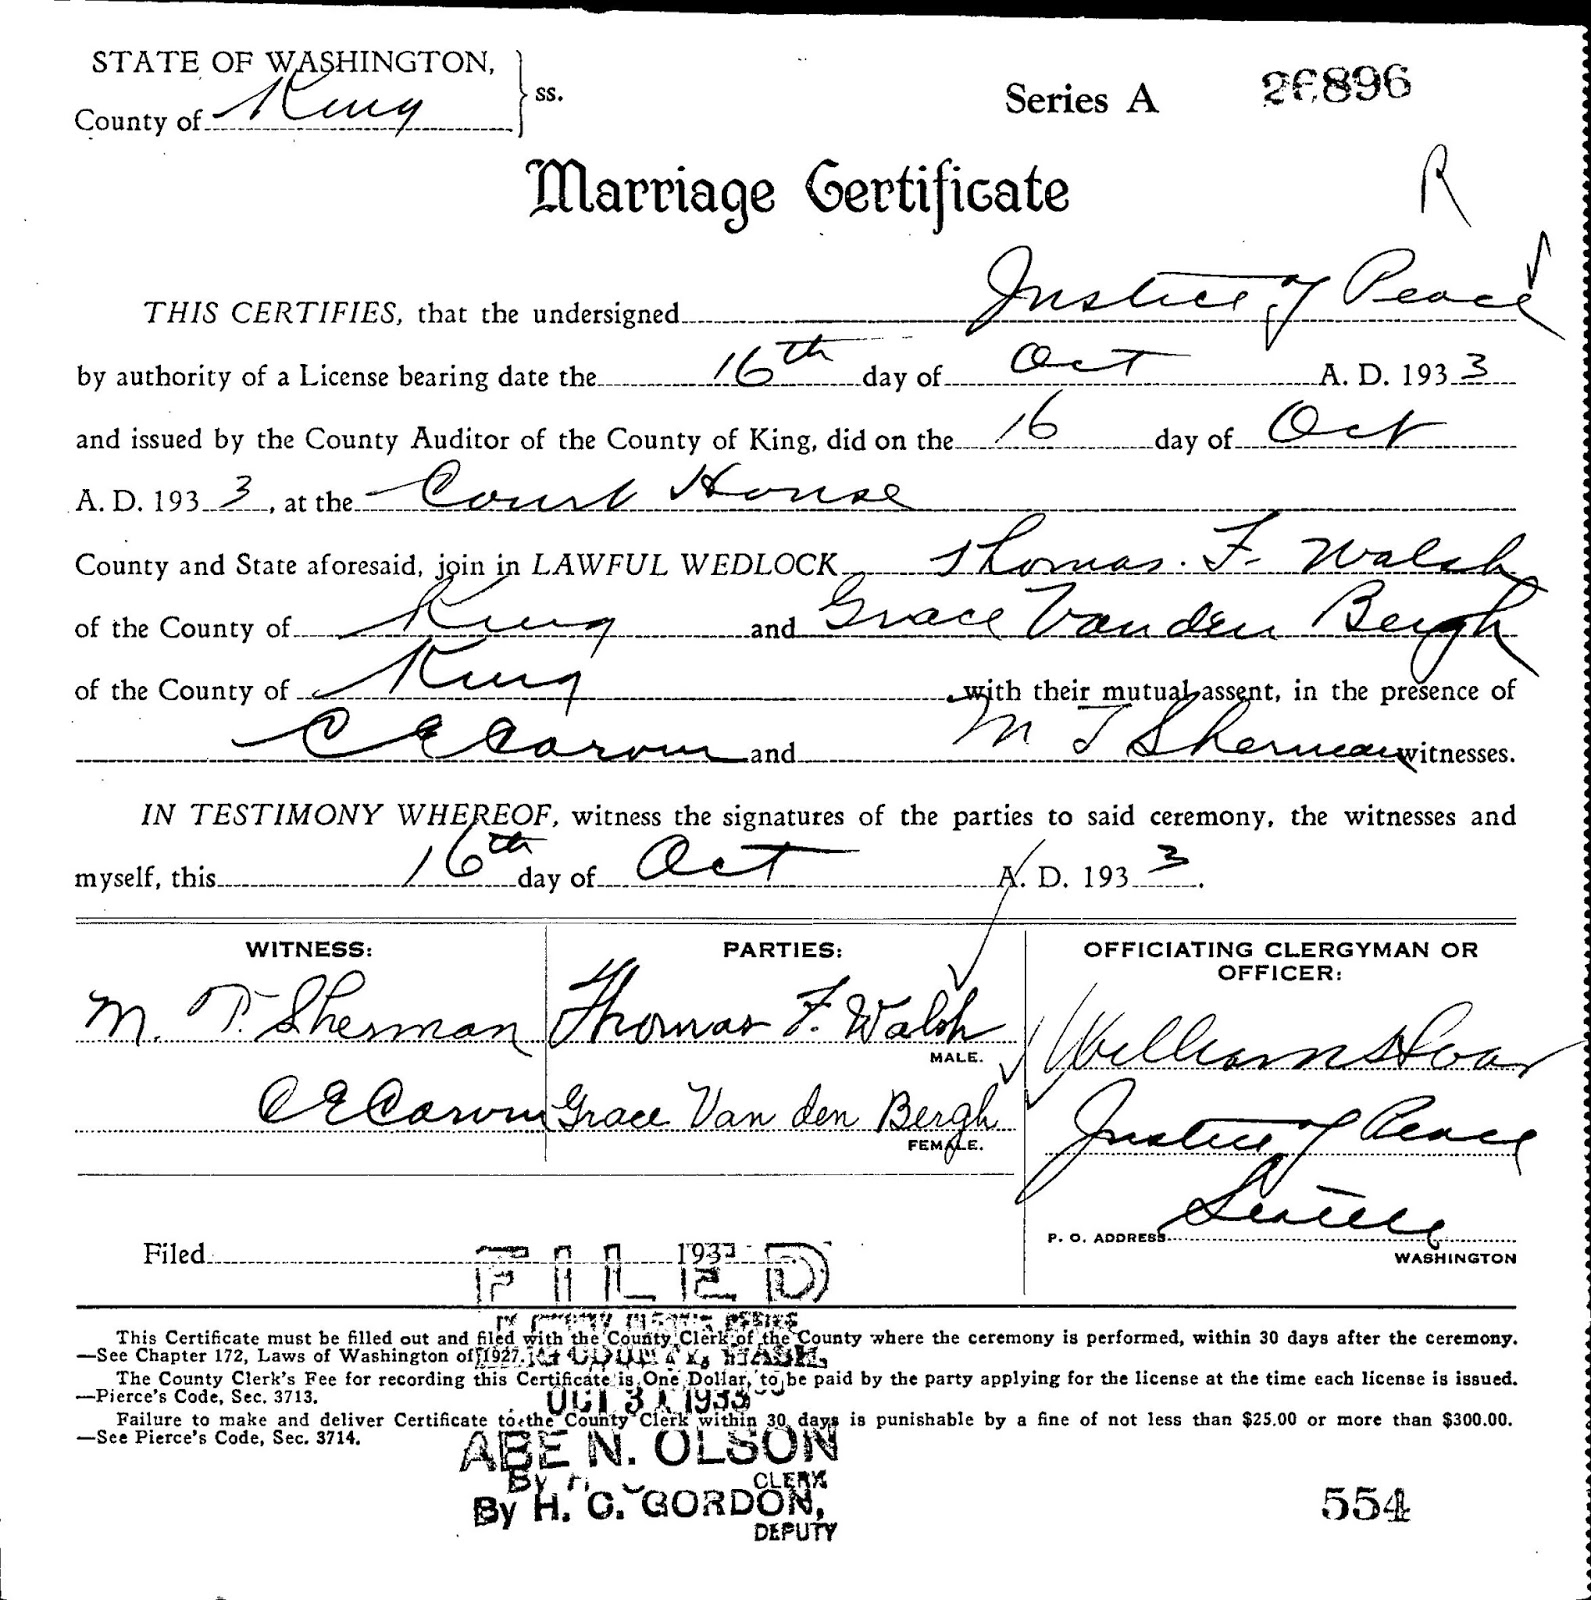 "Washington State Archives, ""Marriage Records,"" database, Washington State Archives - Digital Archives (http://www.digitalarchives.wa.gov/ : accessed 3 Feb 2015), entry for Thomas F Walsh and Grace Van den Bergh, married 16 Oct 1933."